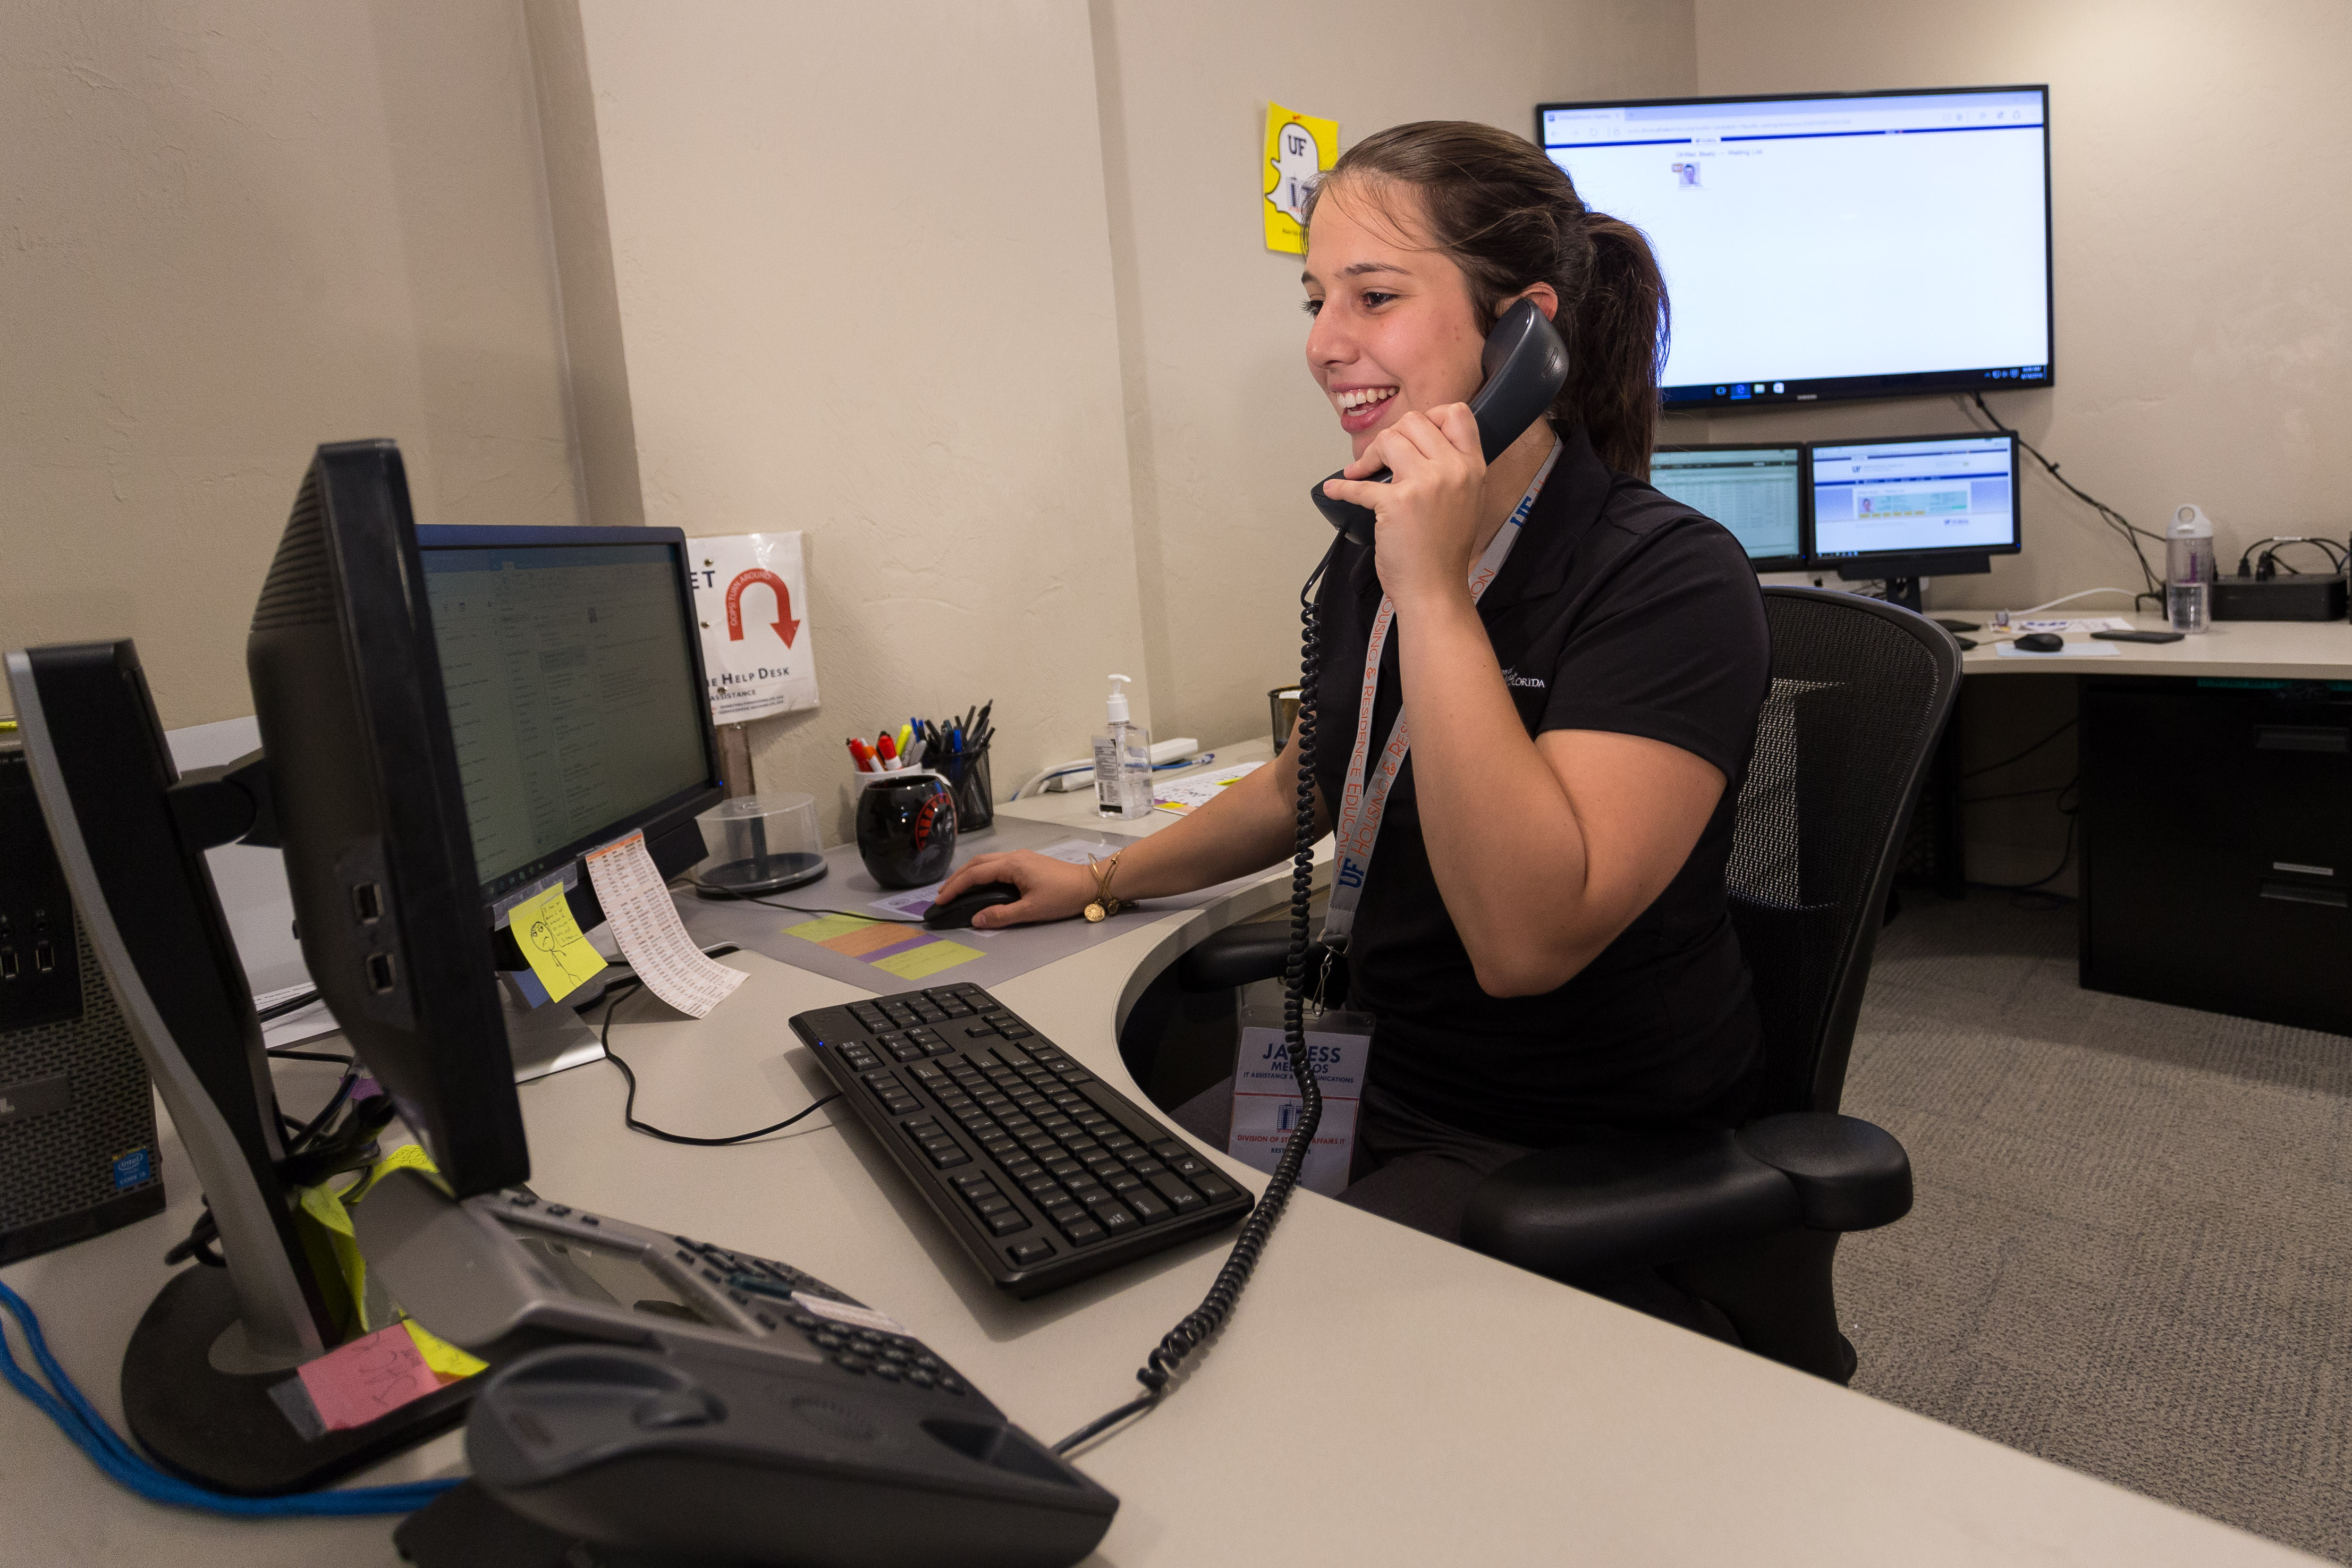 student answering phone calls at DH Net help desk